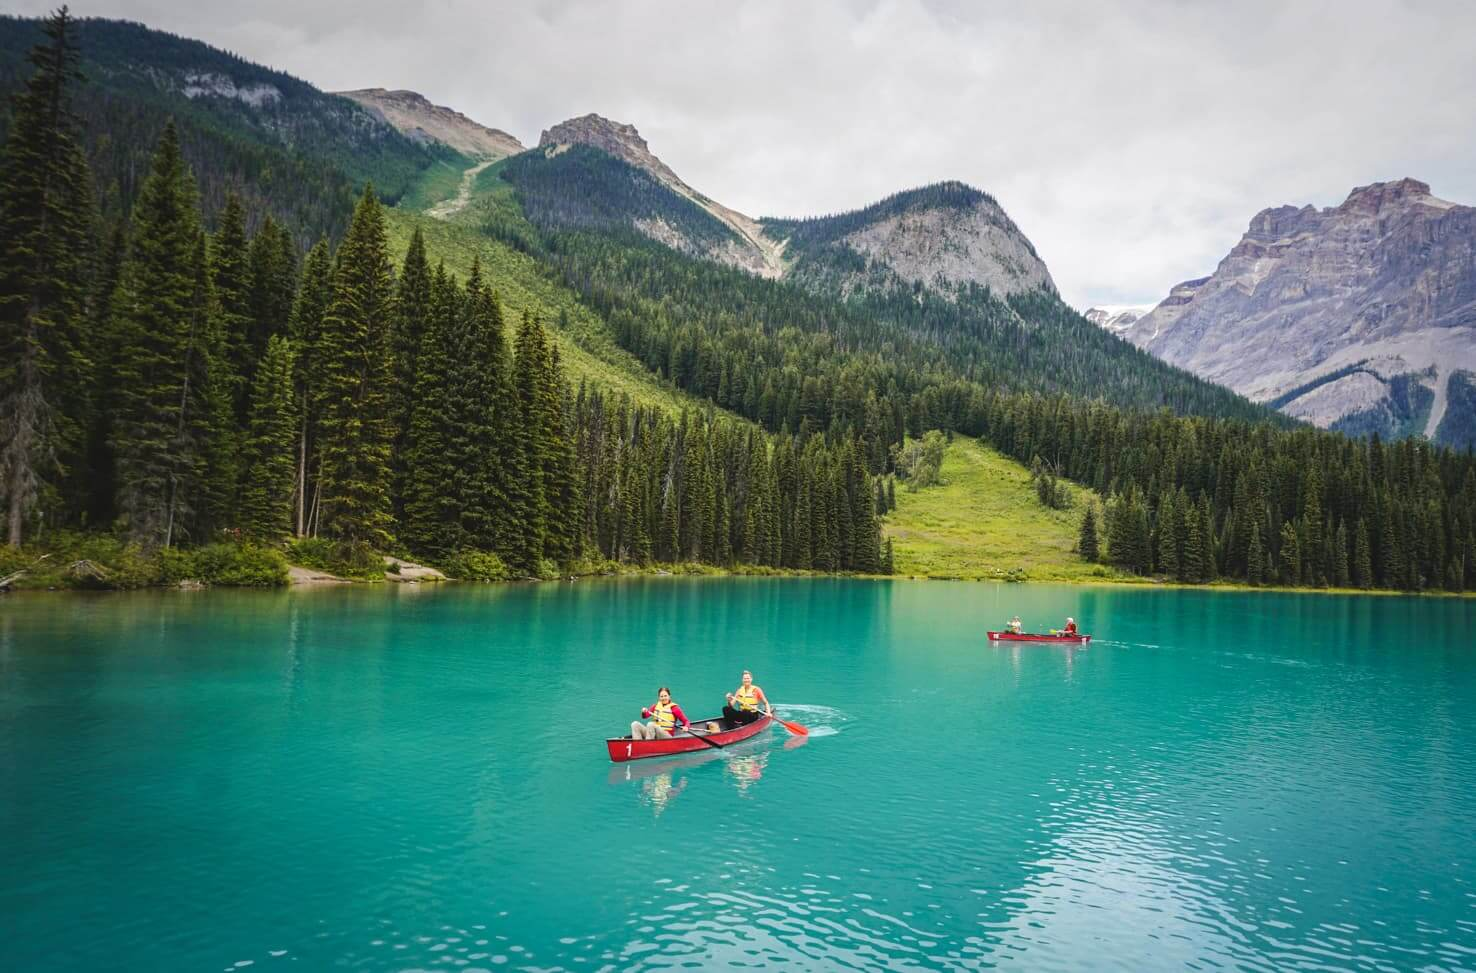 Canadian Rockies road trip itinerary - Emerald Lake, Yoho National Park